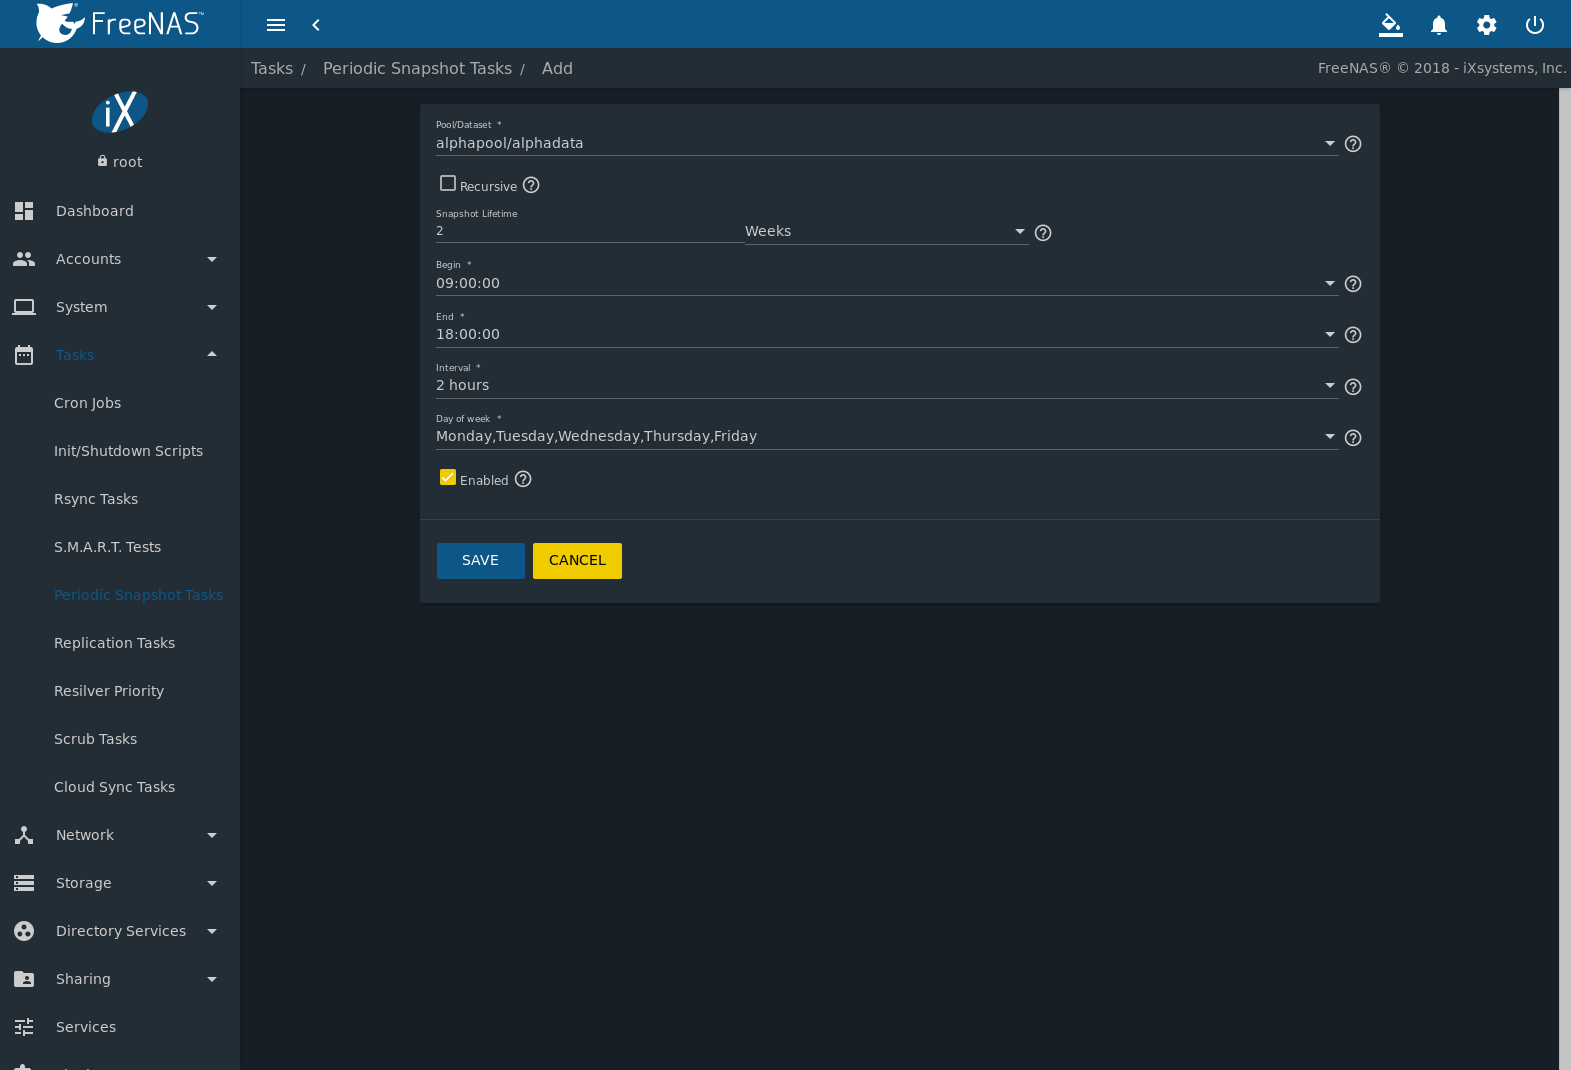 7  Tasks — FreeNAS®11 2-U3 User Guide Table of Contents